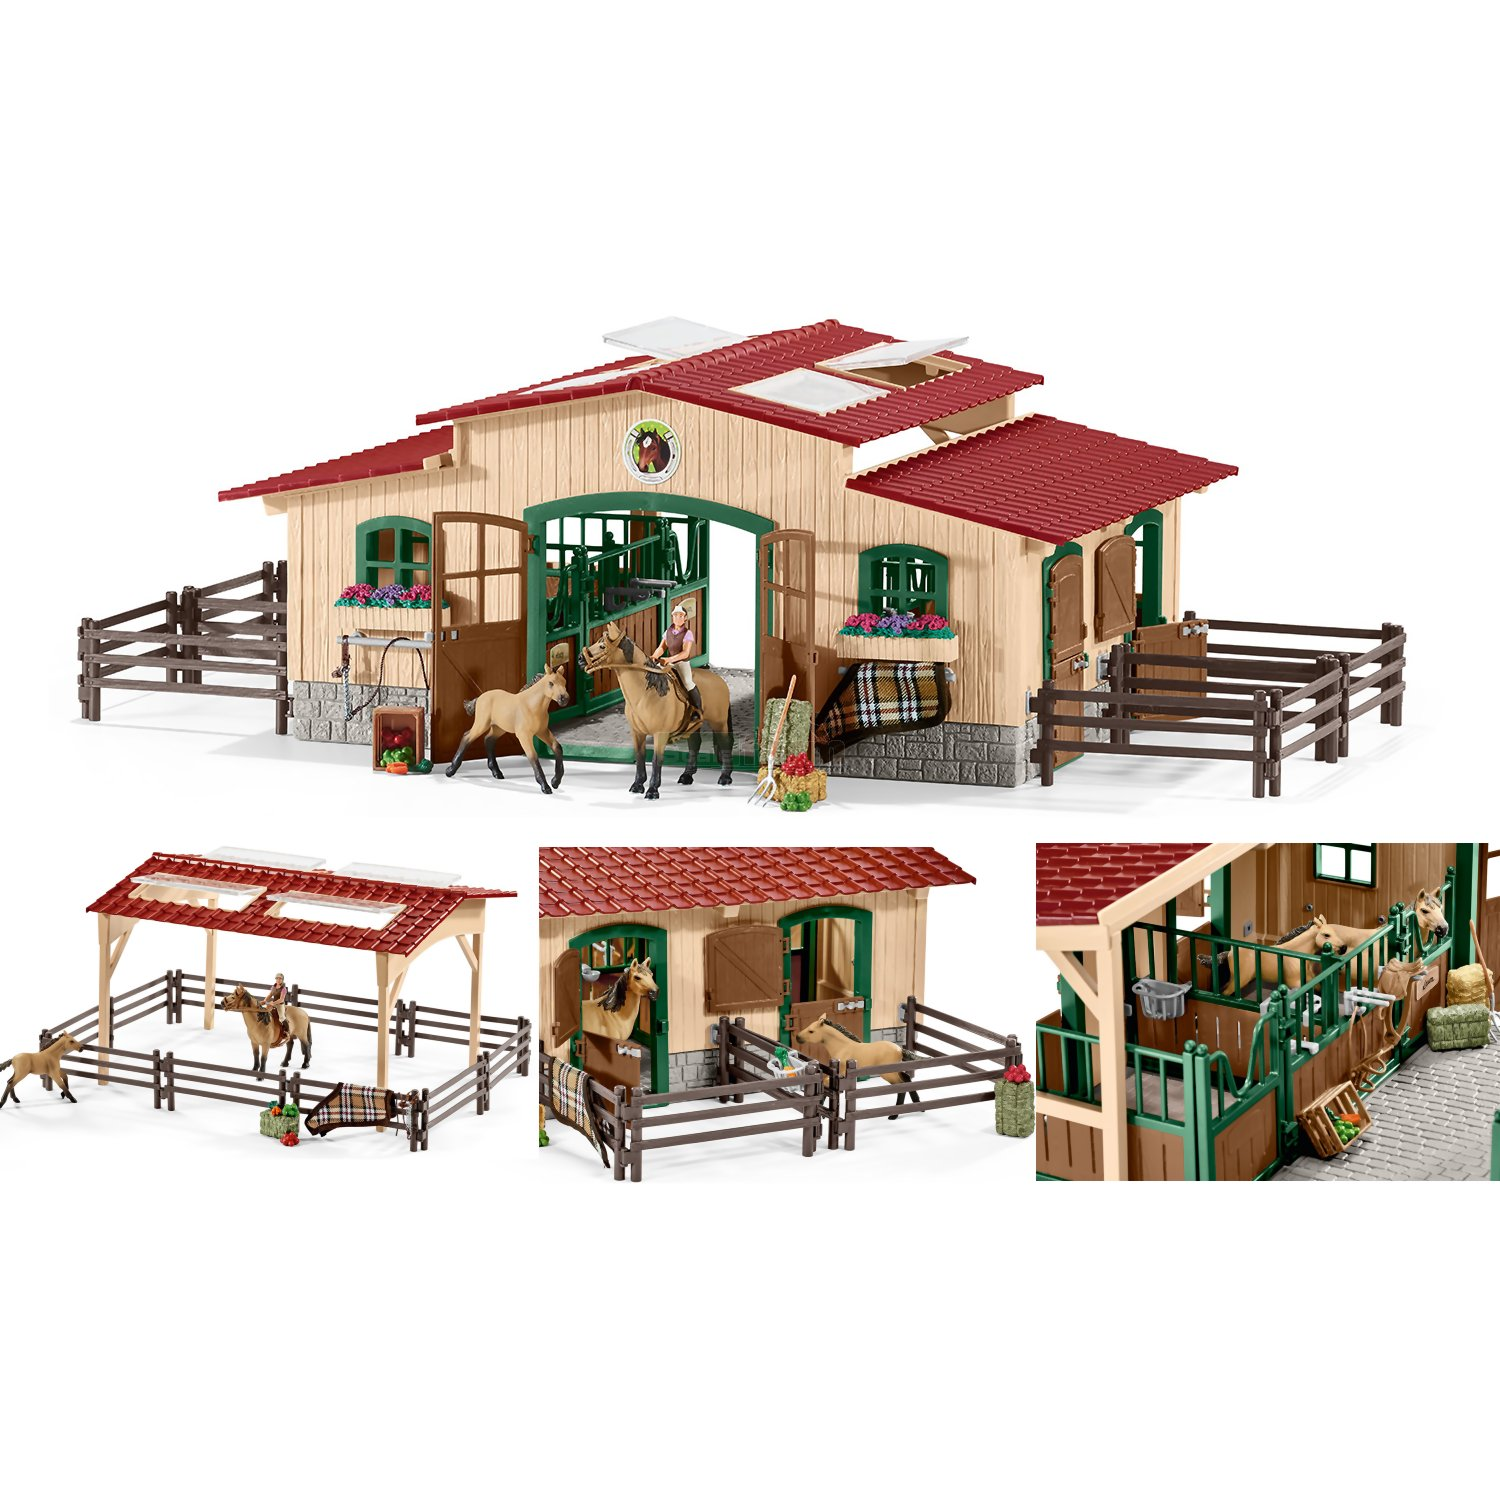 Stable with Horses and Accessories (Schleich 42195)